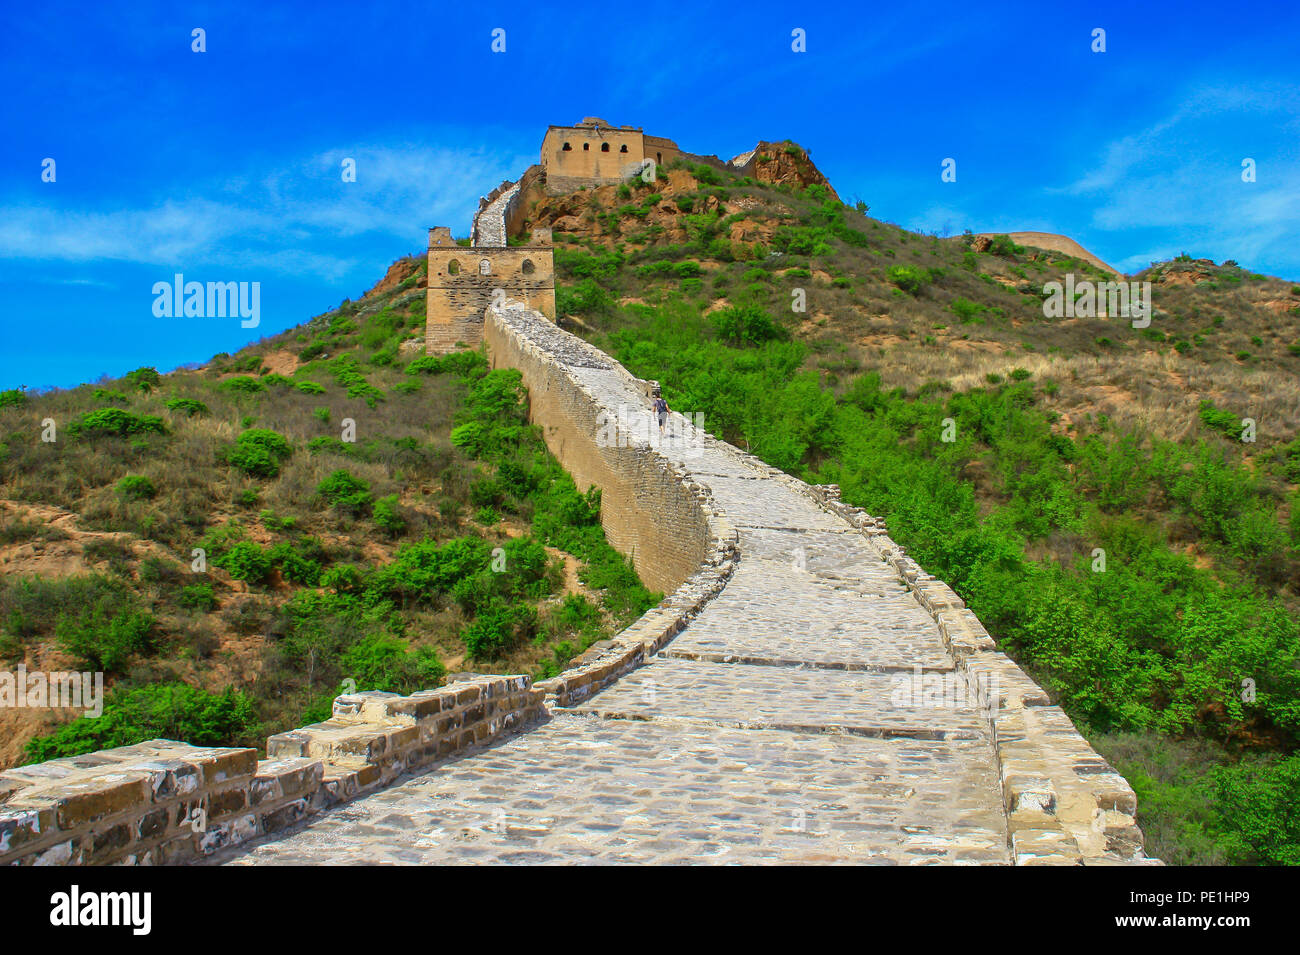 Jinshanling, China - probably the most famous landmark in China, the Great Wall runs for about 9.000 km - Stock Image